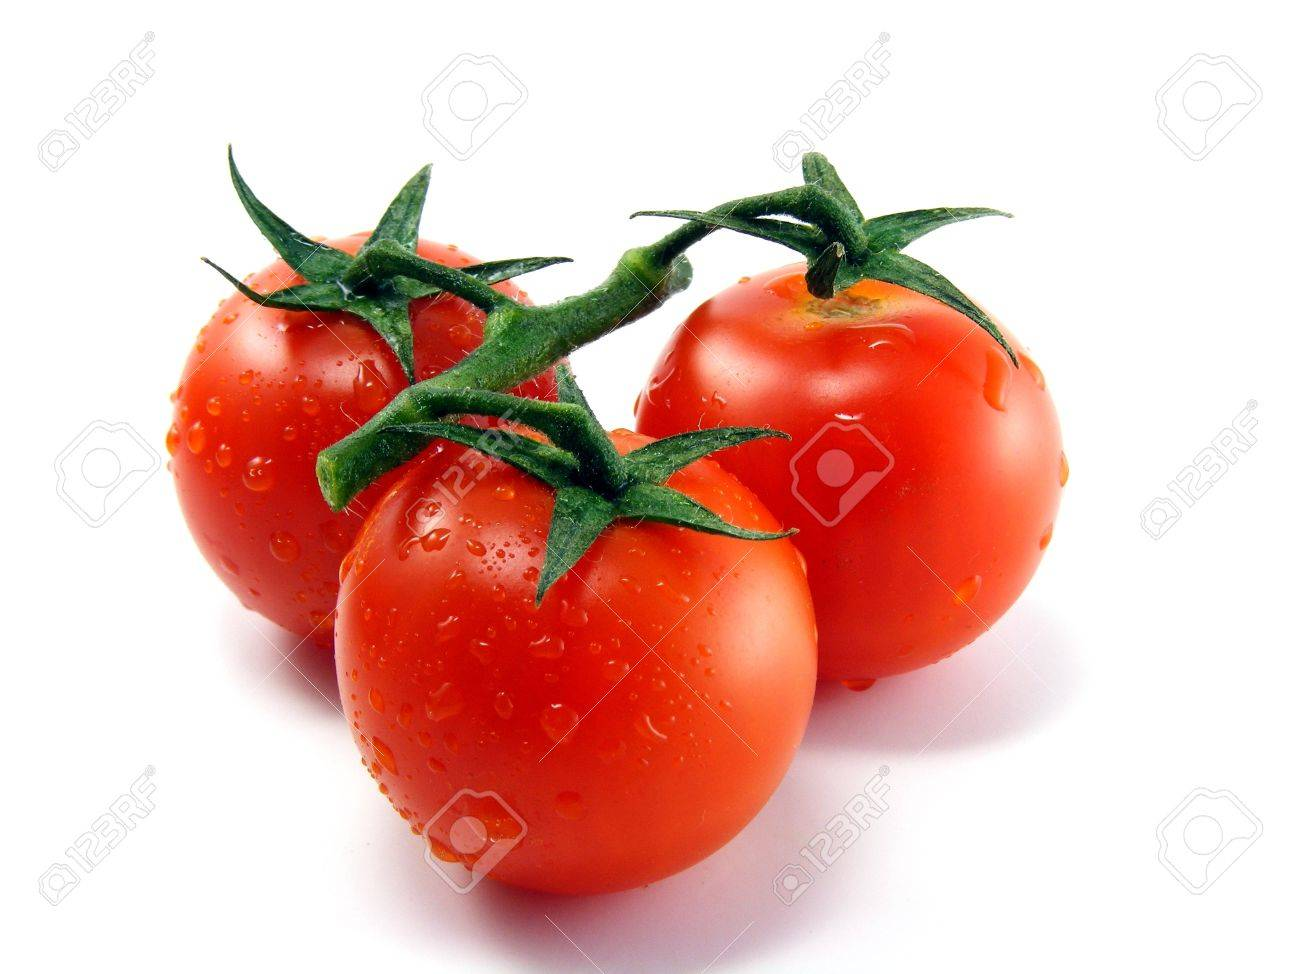 Wet fresh tomatoes with stem leaves on white background - 12898456